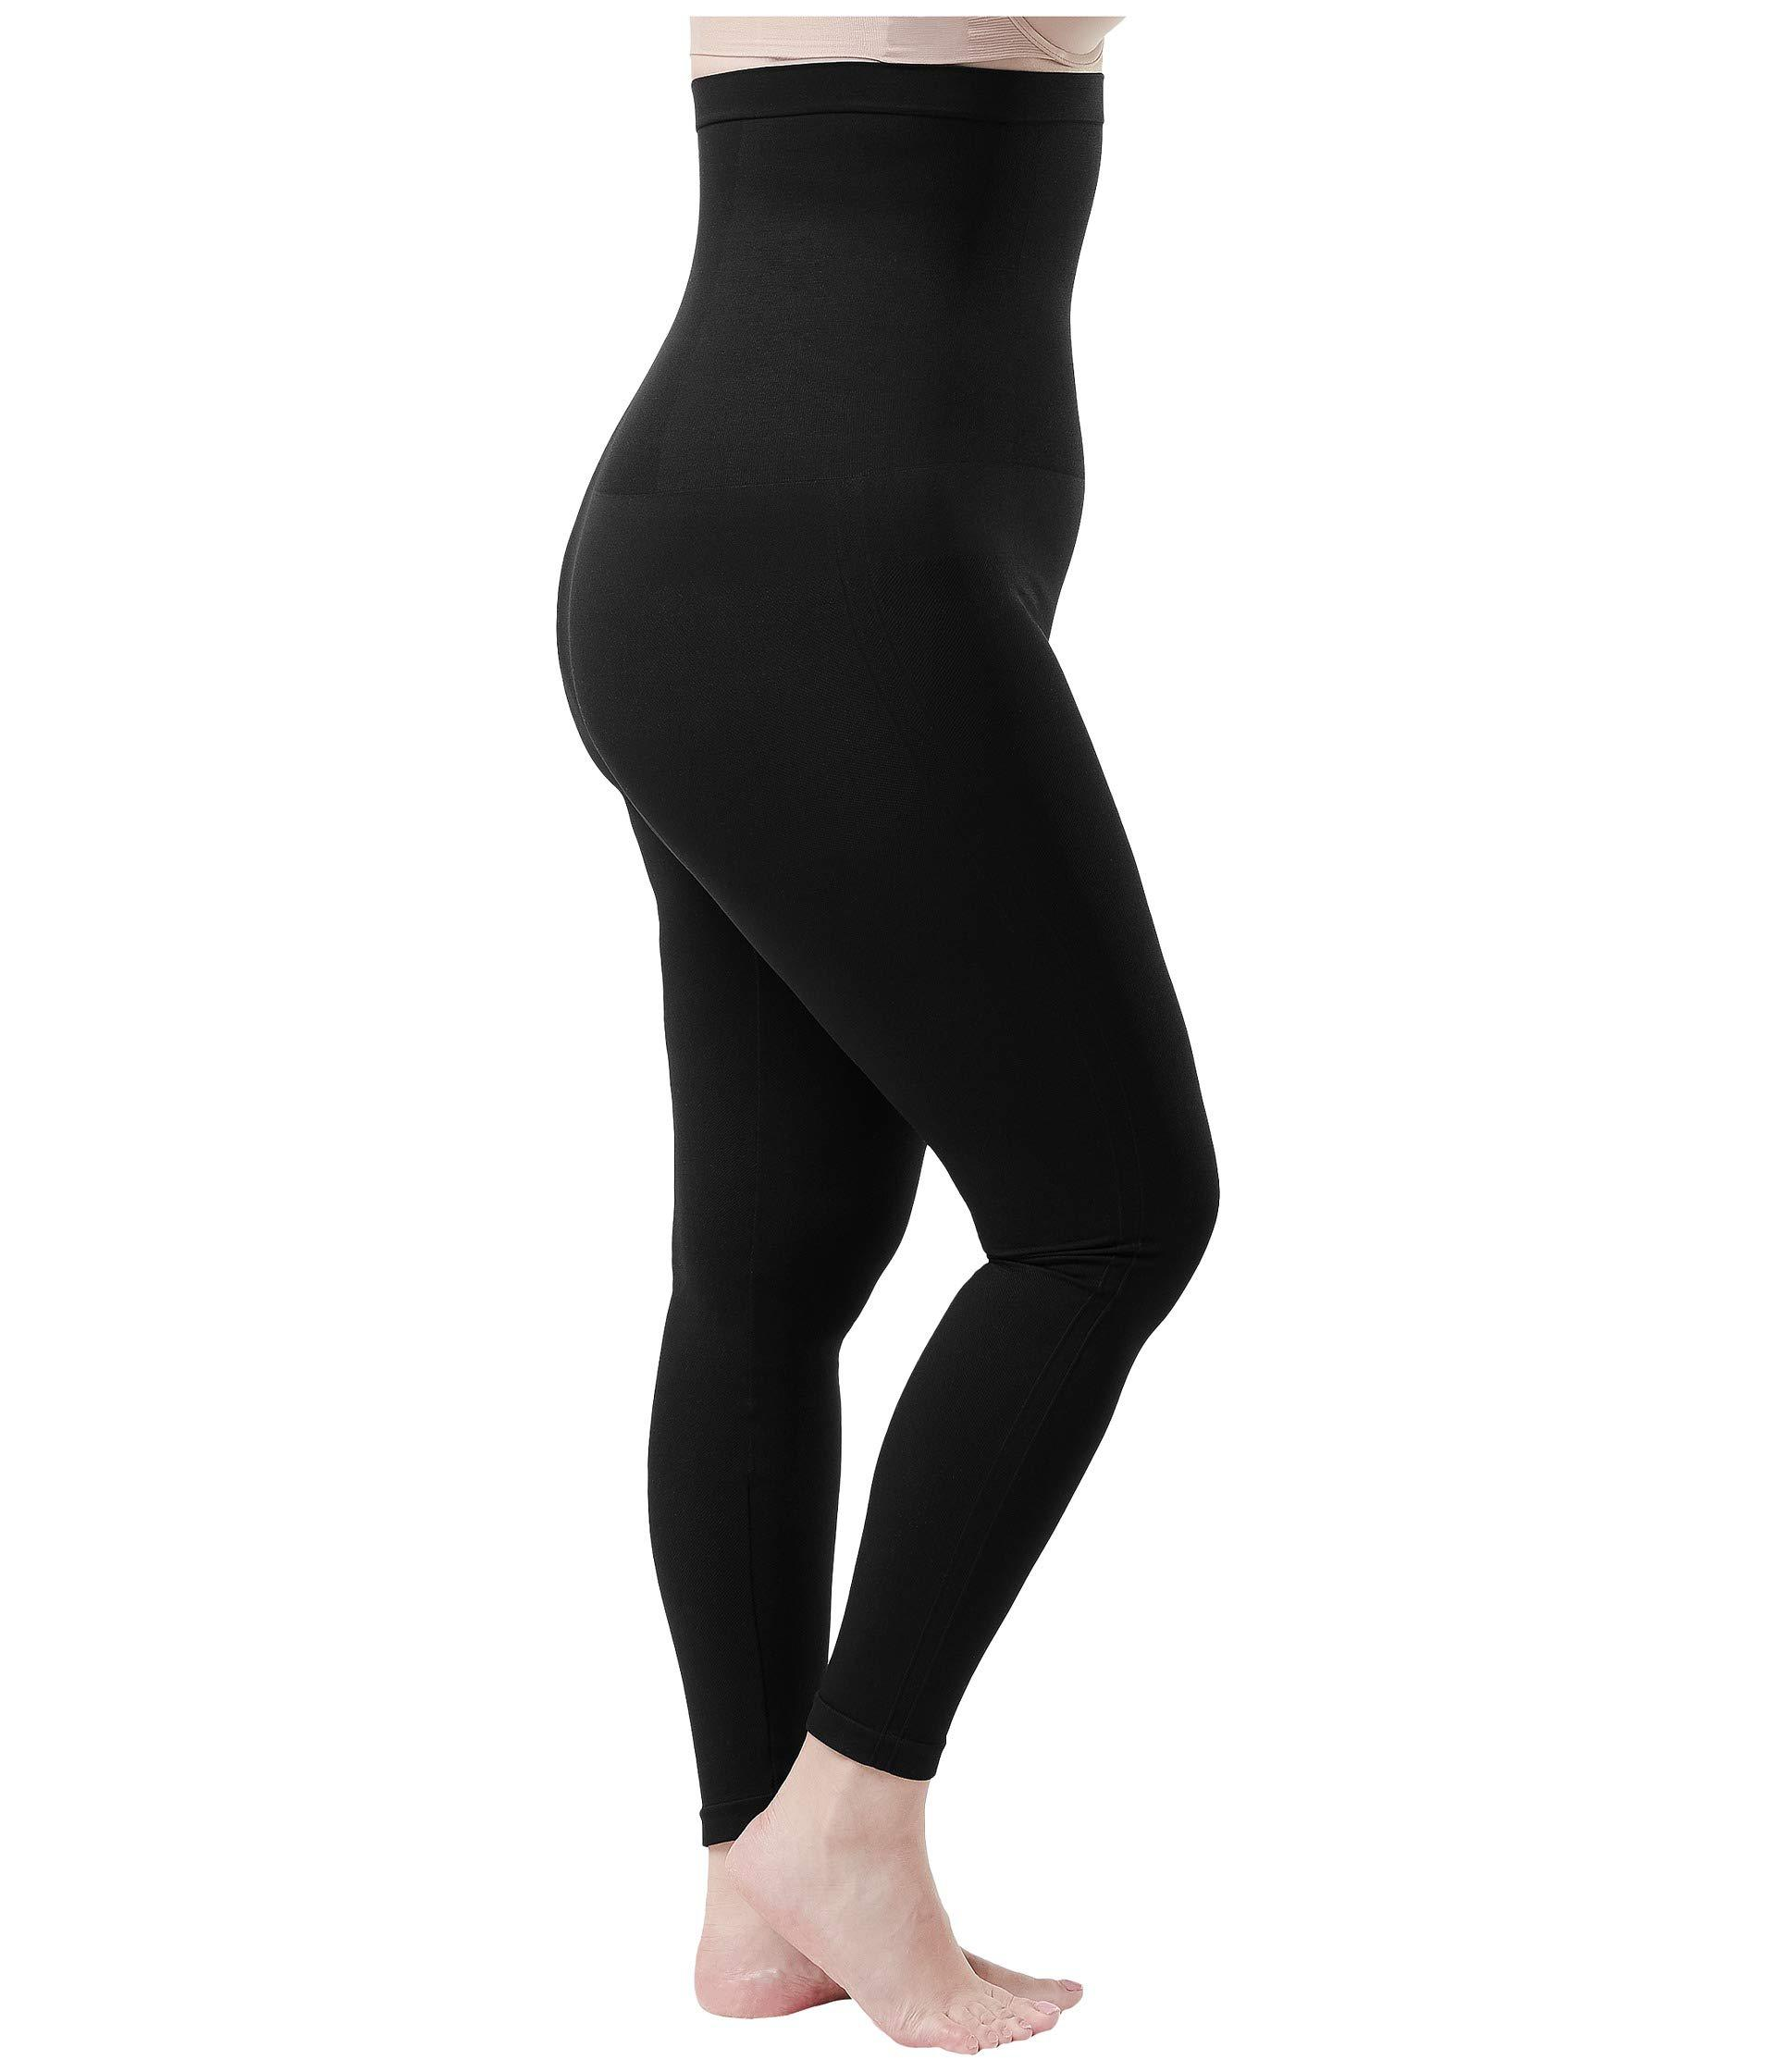 892da429e3bc6 Lyst - Spanx Plus Size Look At Me Now High-waisted Seamless Leggings (very  Black) Women's Clothing in Black